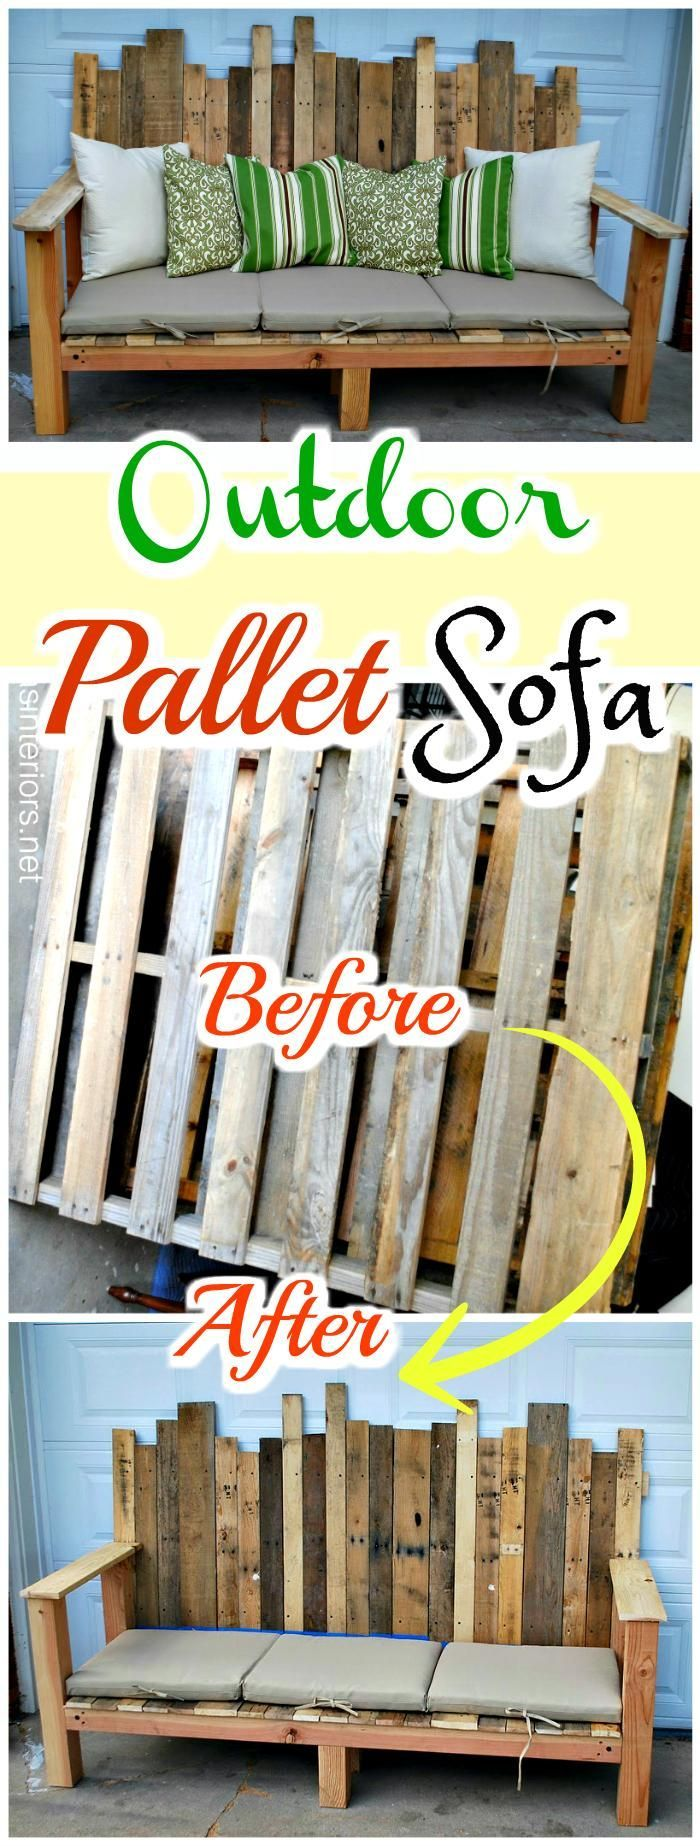 25 best outdoor pallet projects ideas on pinterest outdoor pallet bar pallet outdoor. Black Bedroom Furniture Sets. Home Design Ideas